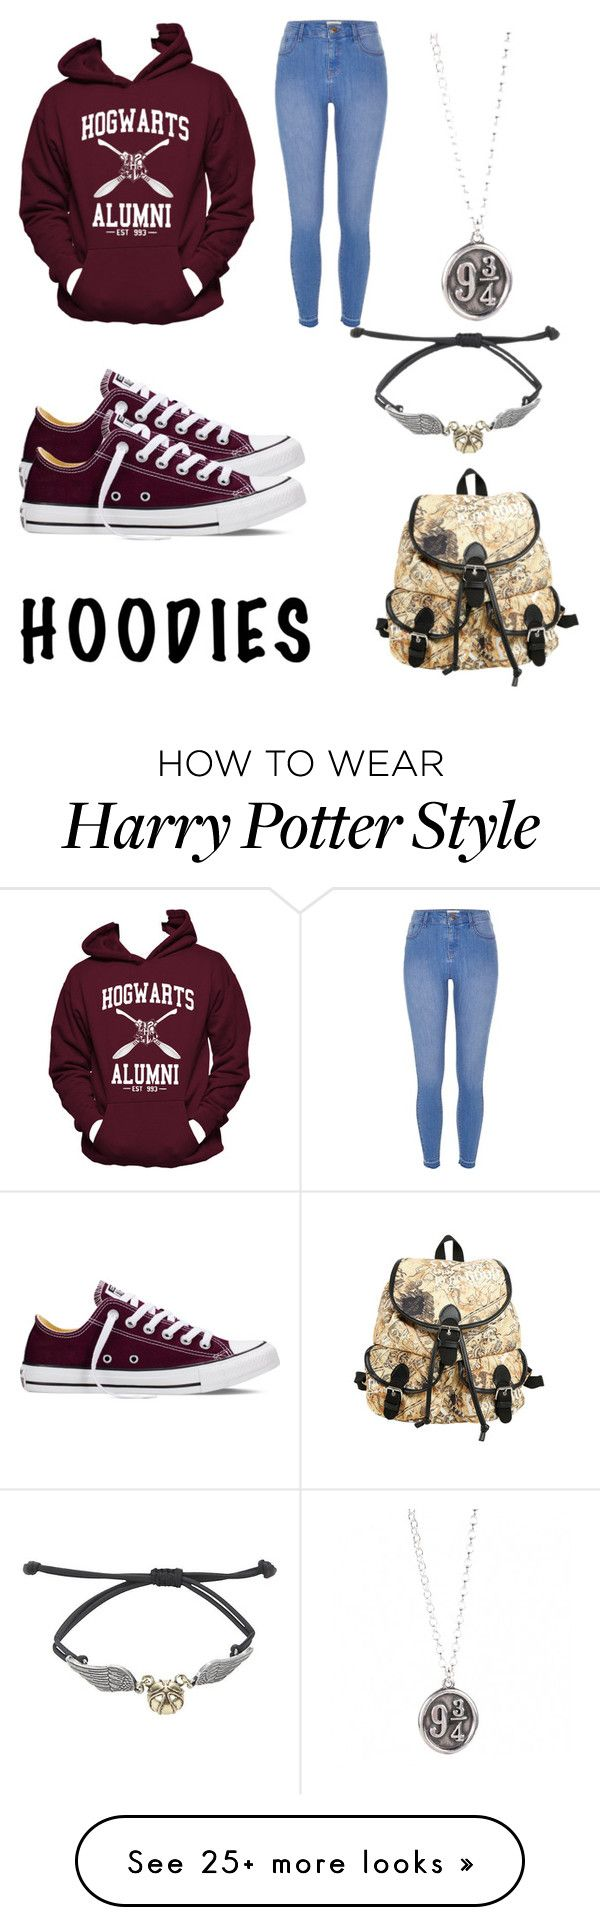 """Harry Potter hoodie"" by berrycake18 on Polyvore featuring Hanes, River Island and Converse"